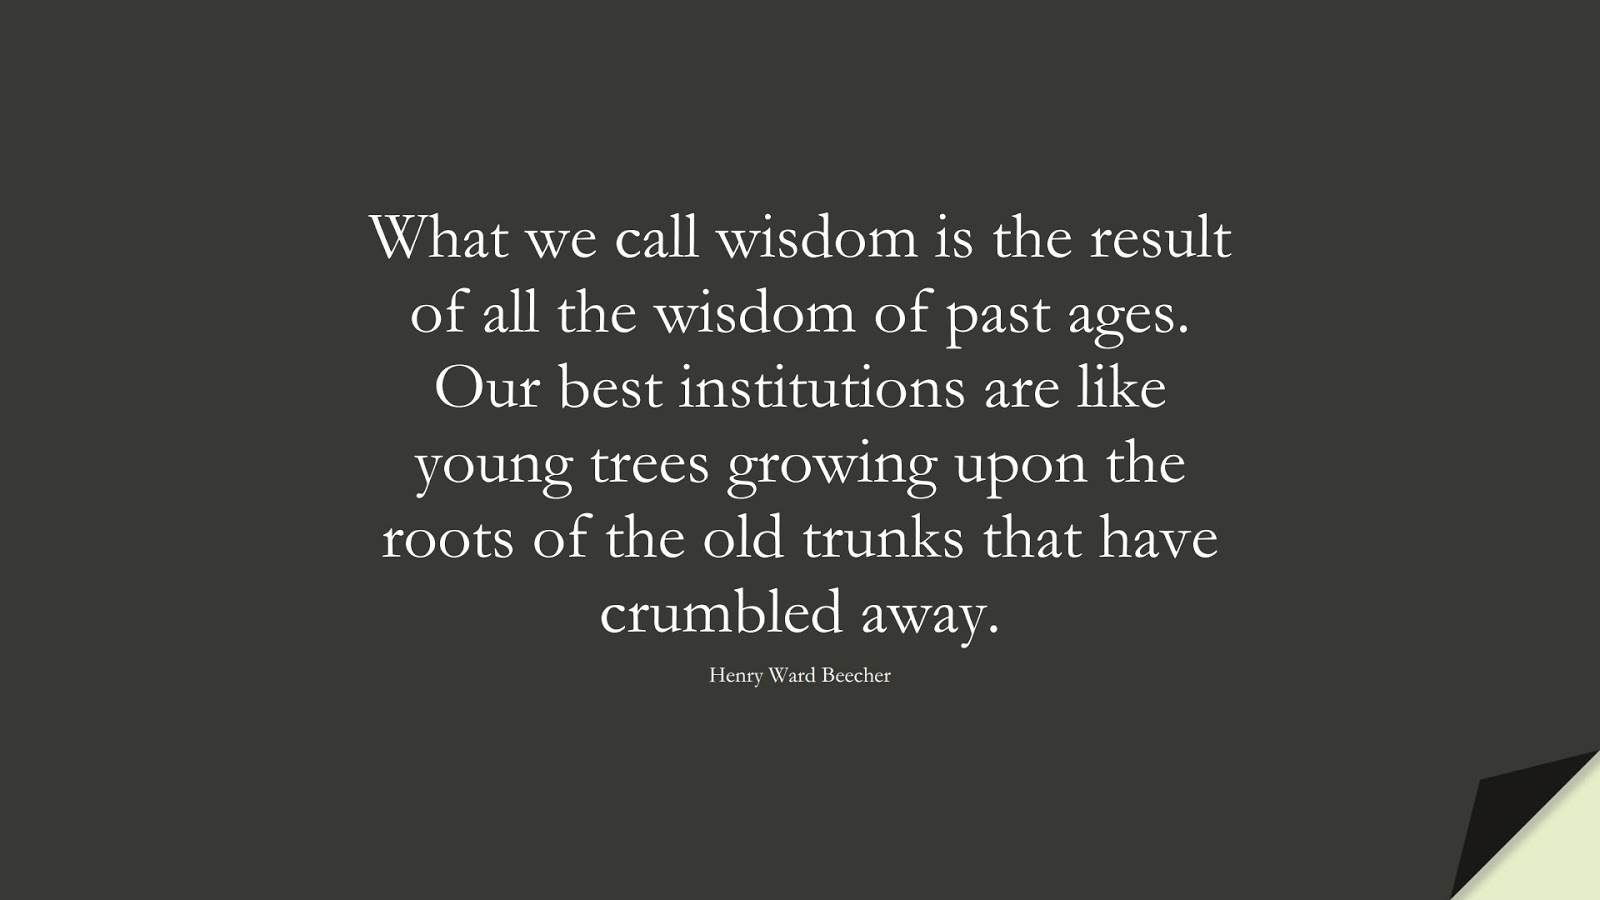 What we call wisdom is the result of all the wisdom of past ages. Our best institutions are like young trees growing upon the roots of the old trunks that have crumbled away. (Henry Ward Beecher);  #WordsofWisdom